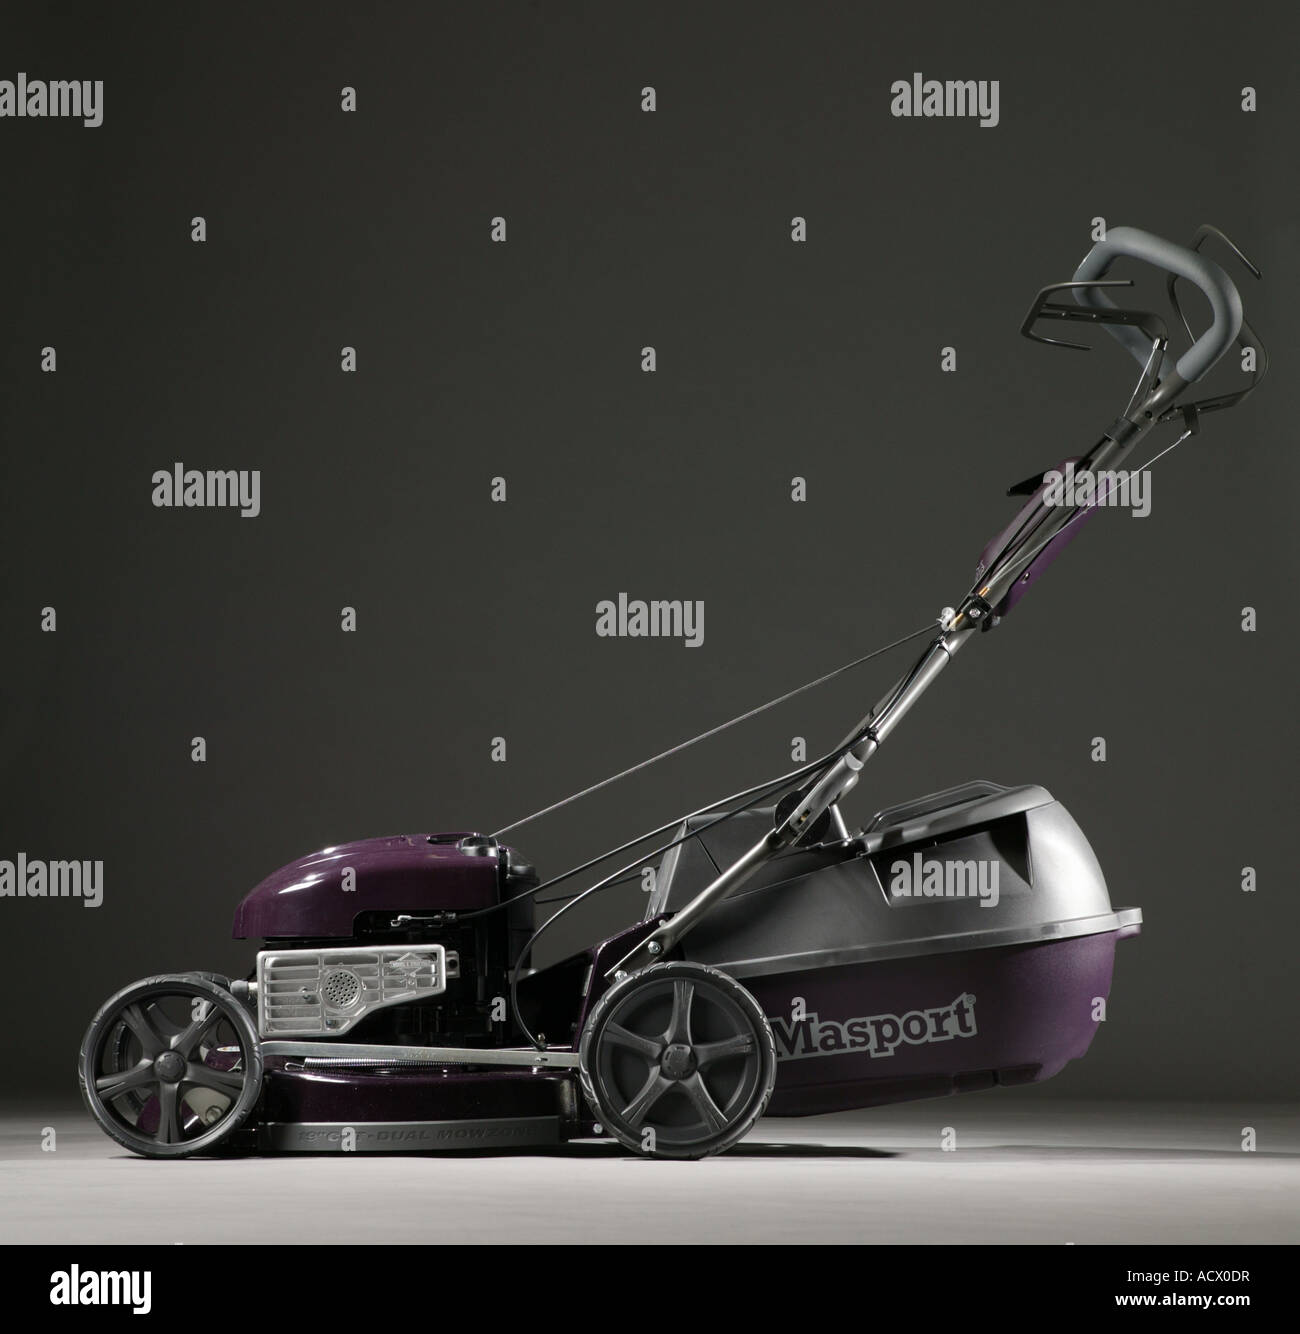 A Lawn mower against a dark background MASPORT MSV 550SP model pictured - Stock Image